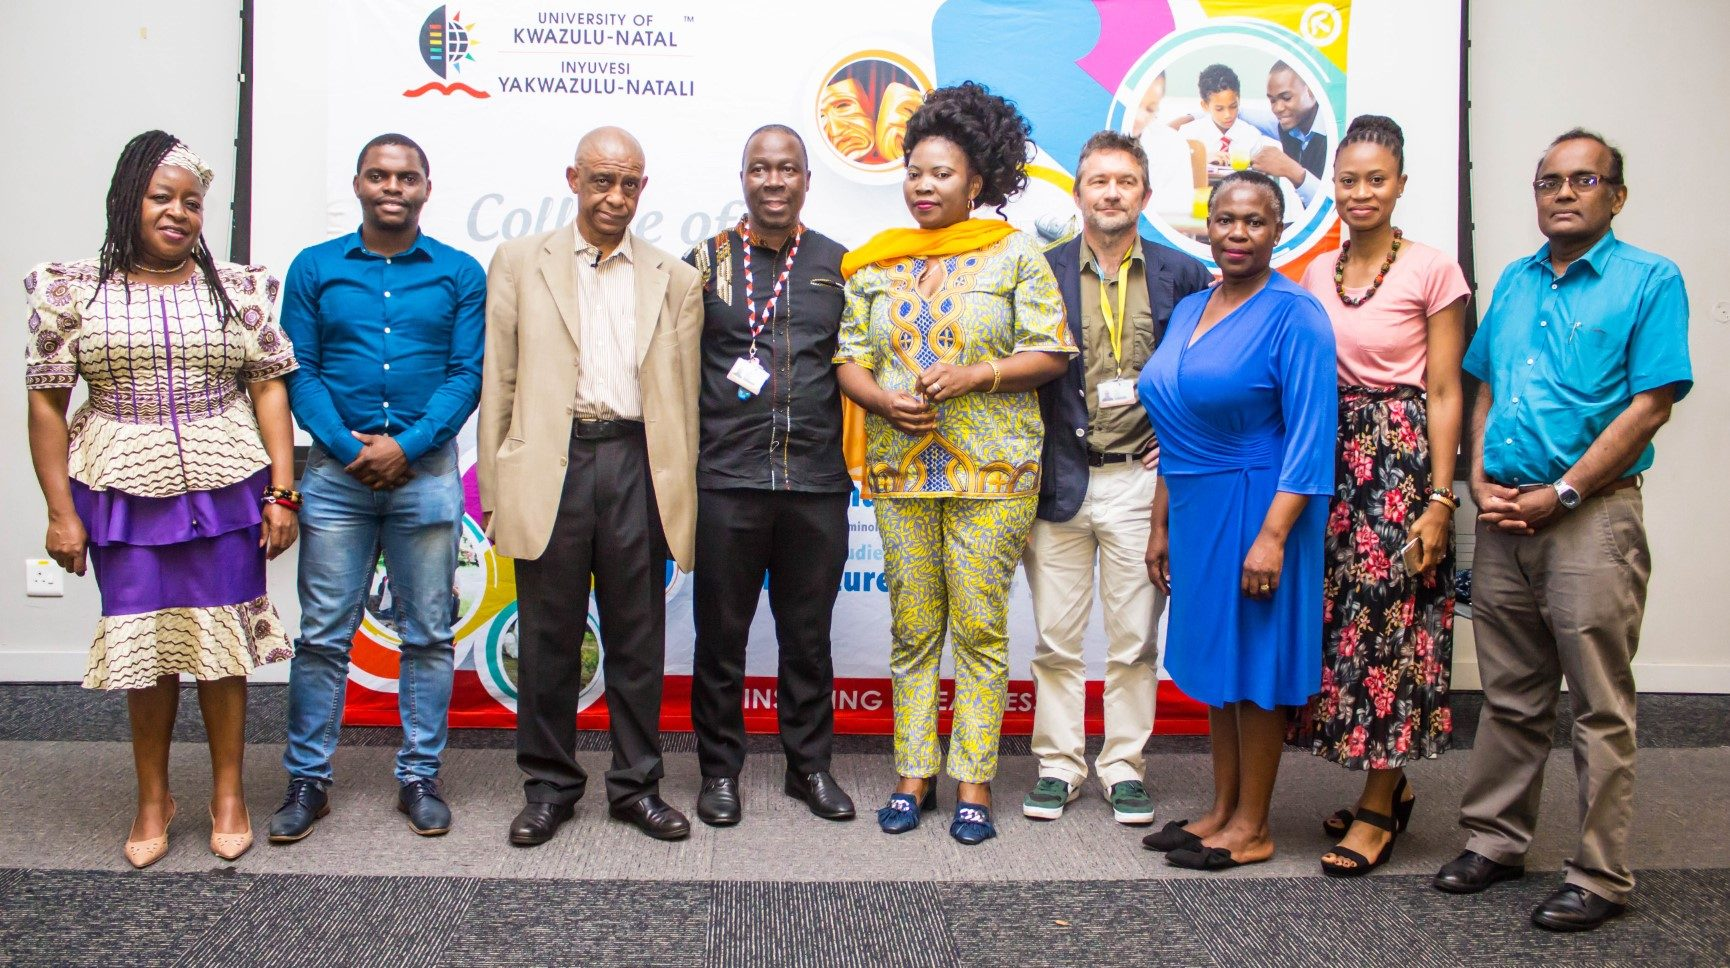 Memory, Ubuntu & Inclusive Epistemology in Higher Education discussed in Transformation Lecture